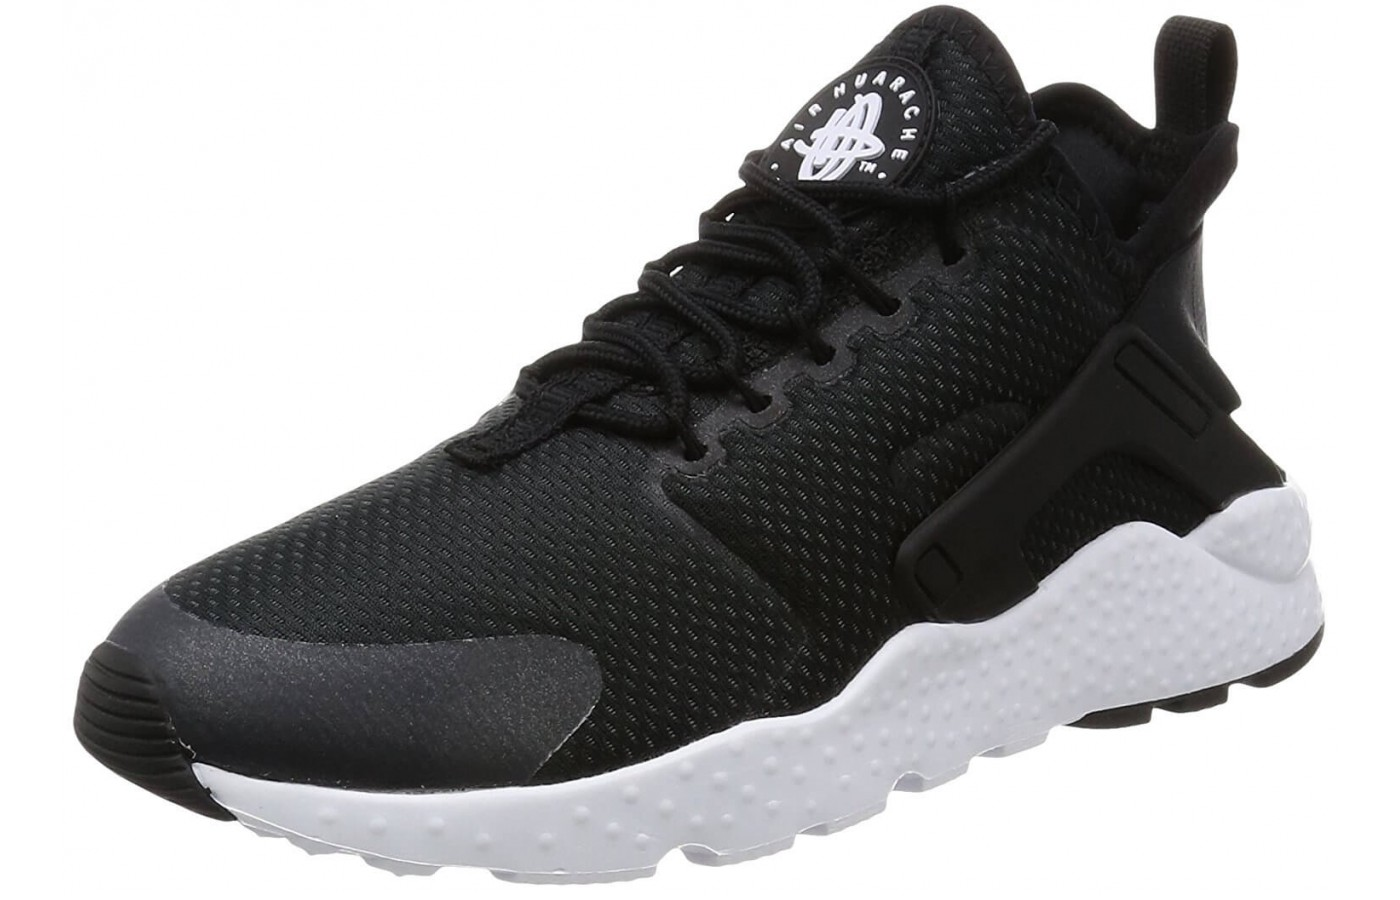 Although the Nike Air Huarache Ultra has a slight heel drop a88c5f1dd